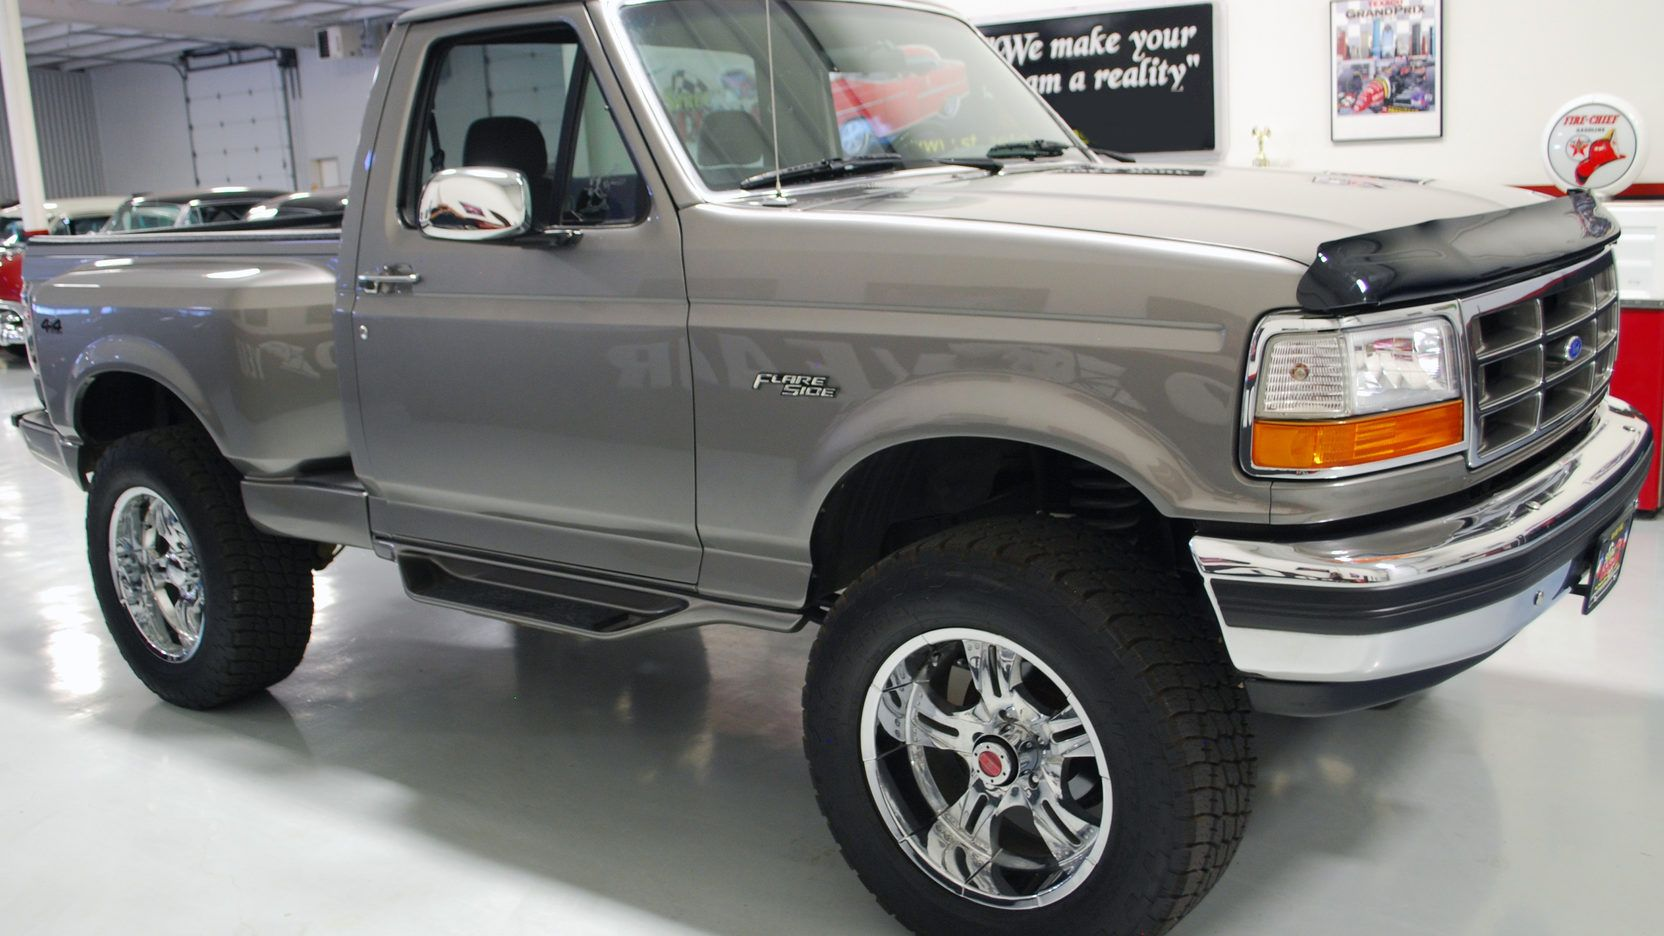 Auction Lot S29 Houston Tx 2012 1992 Ford Regular Cab 4x4 Flareside Pickup Loaded Lifted New Paint Bed Liner Wheels Tires S Ford F150 F150 Ford Trucks